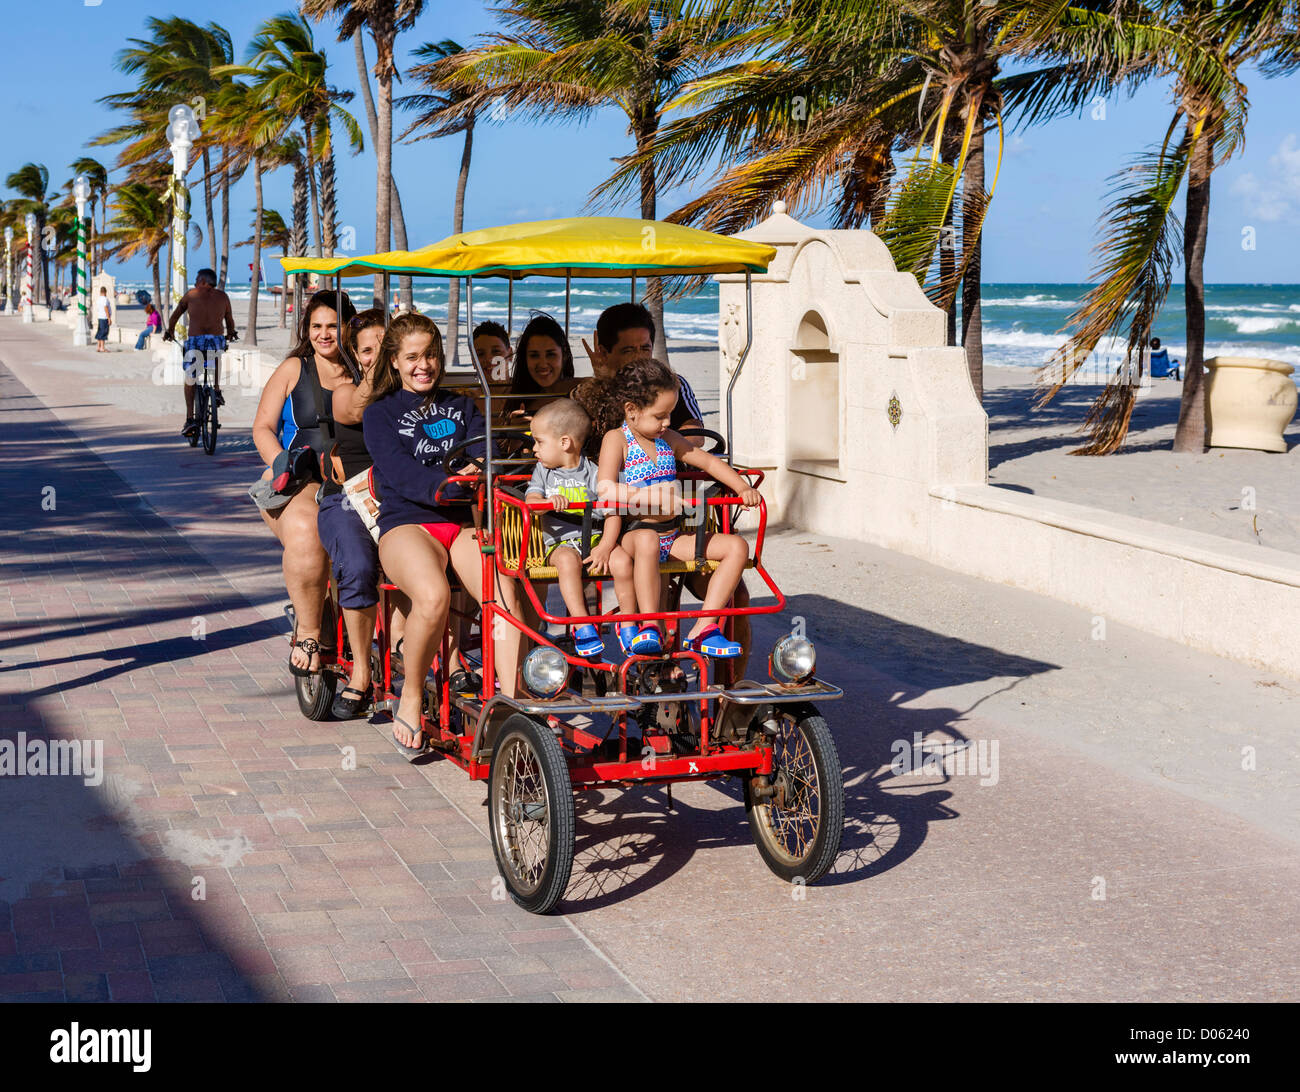 Tourists in a quadricycle on the Broadwalk in Hollywood, near Fort Lauderdale, Broward County, Gold Coast, Florida, - Stock Image